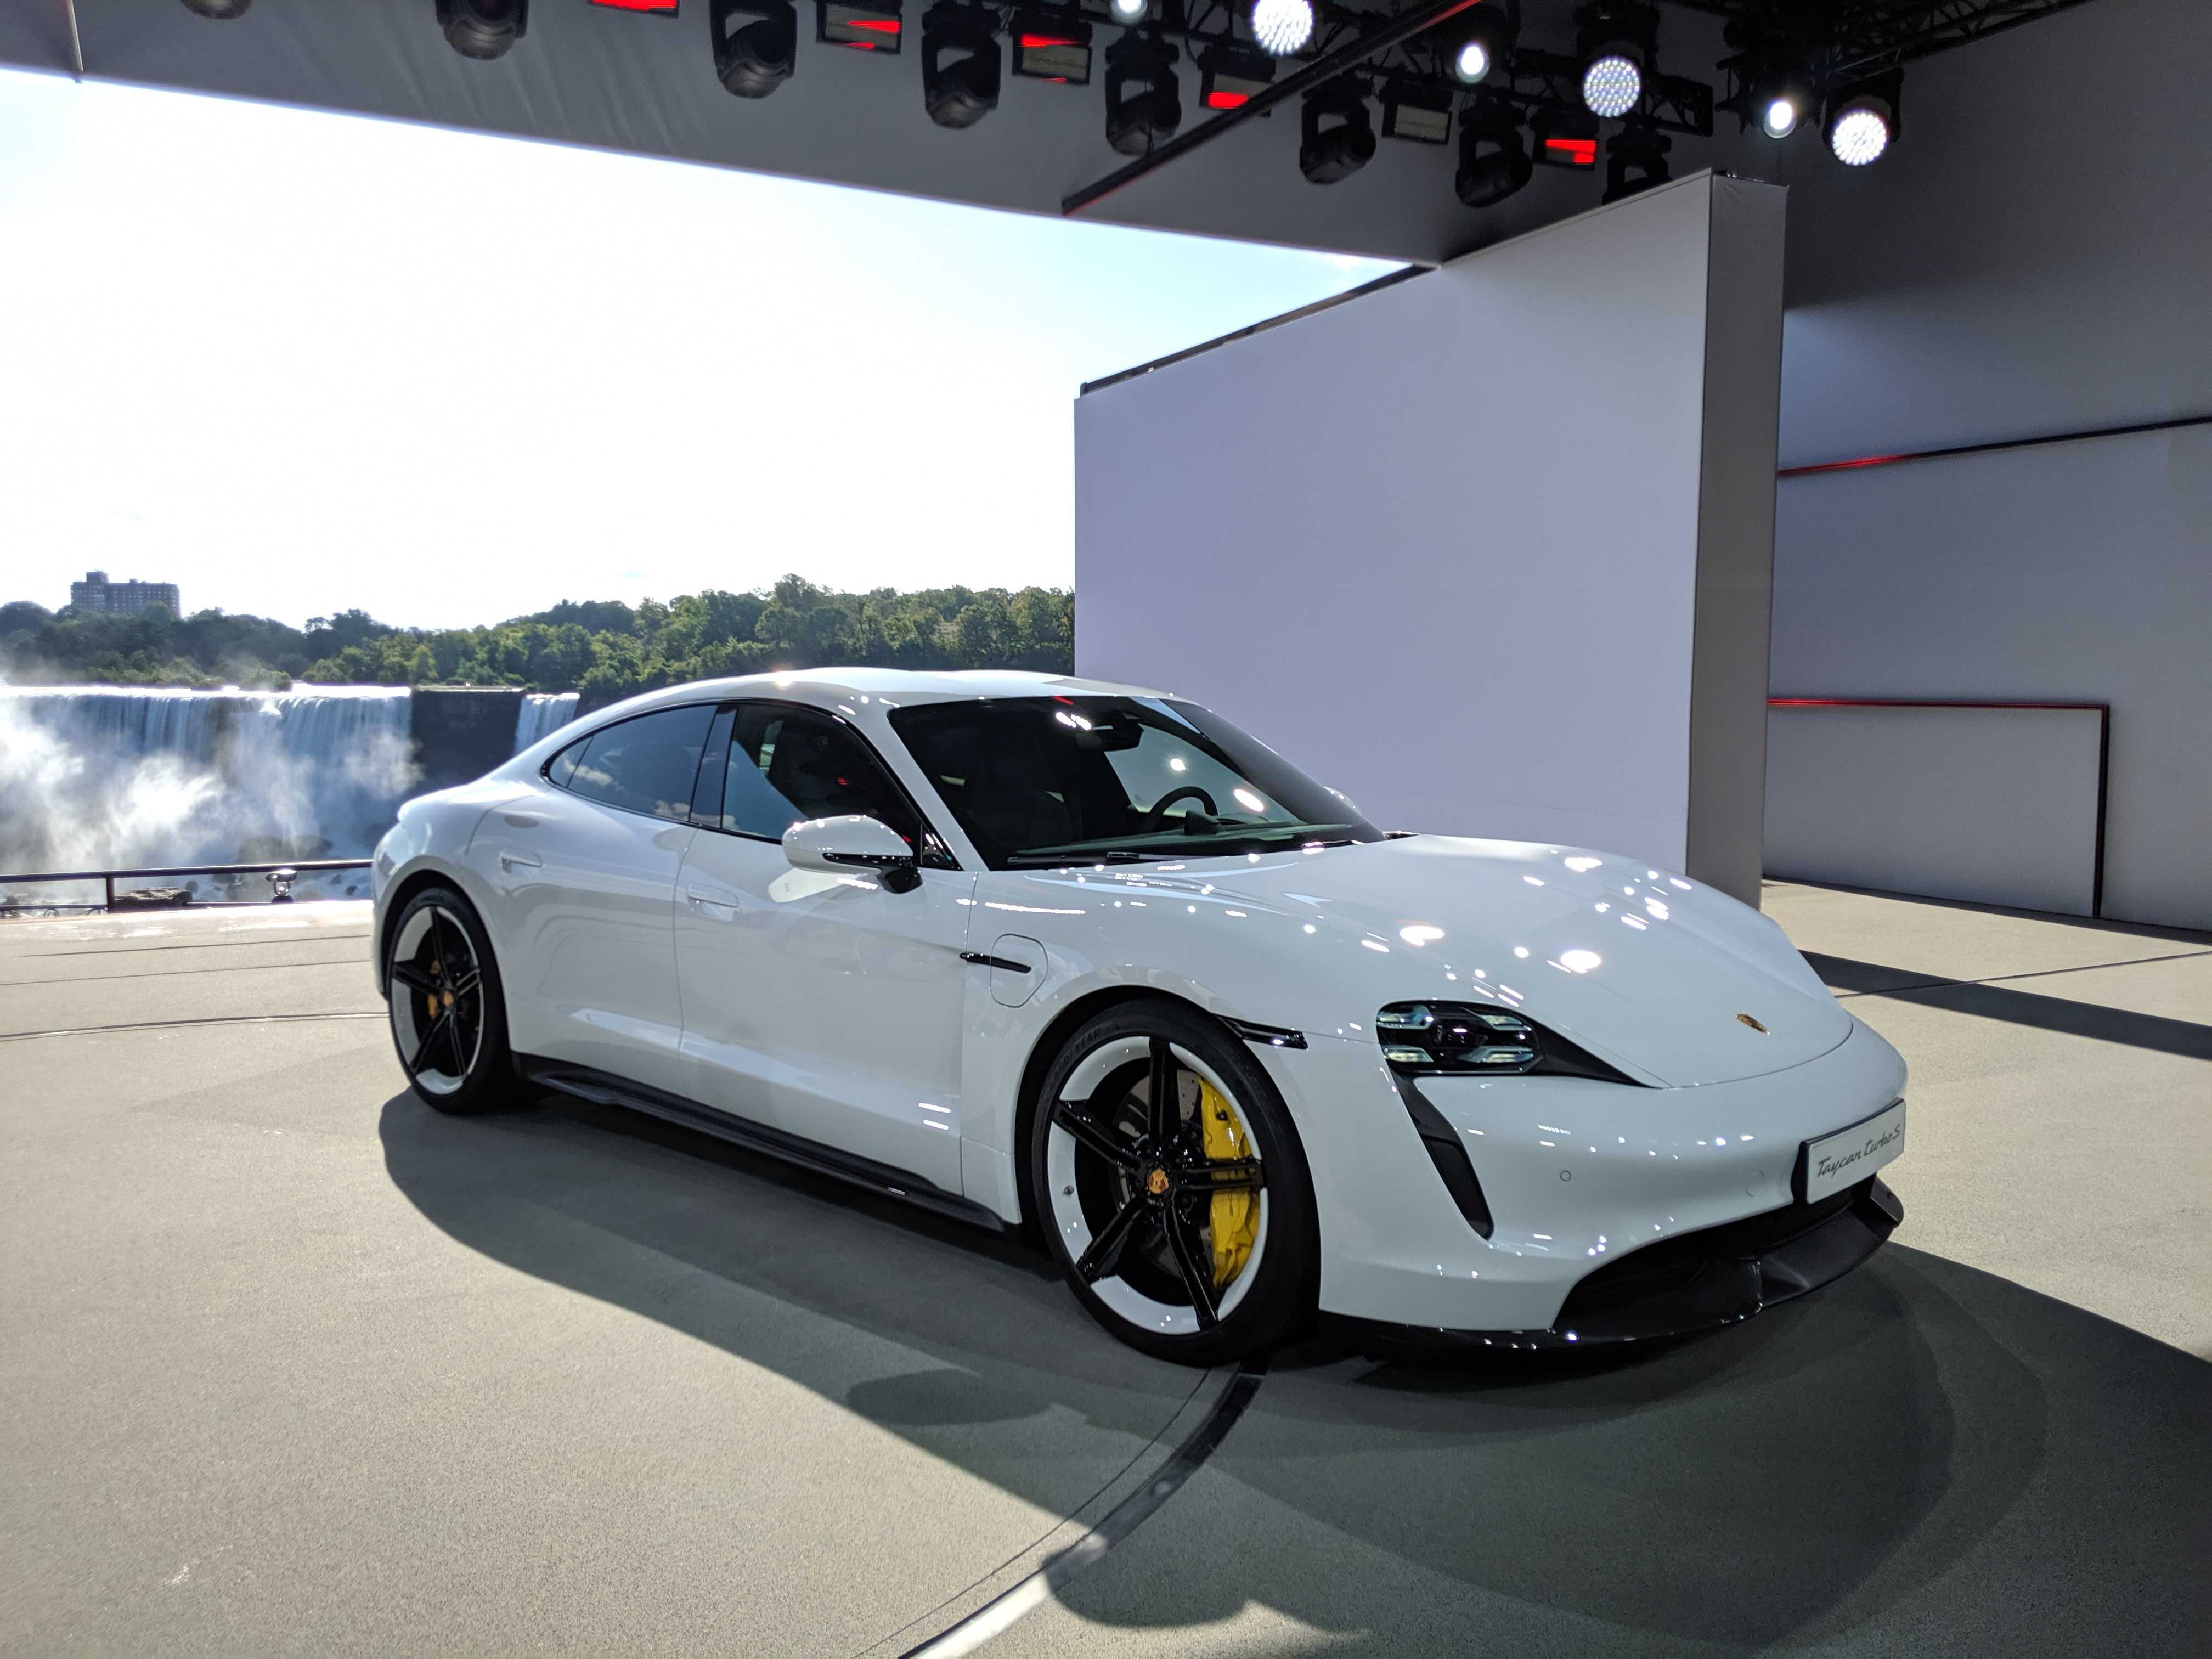 A new accessory module called Electric Sport Sound has been announced for the eco-friendly Porsche Taycan Turbo. Once installed, it lends the car a unique and powerful soundtrack.